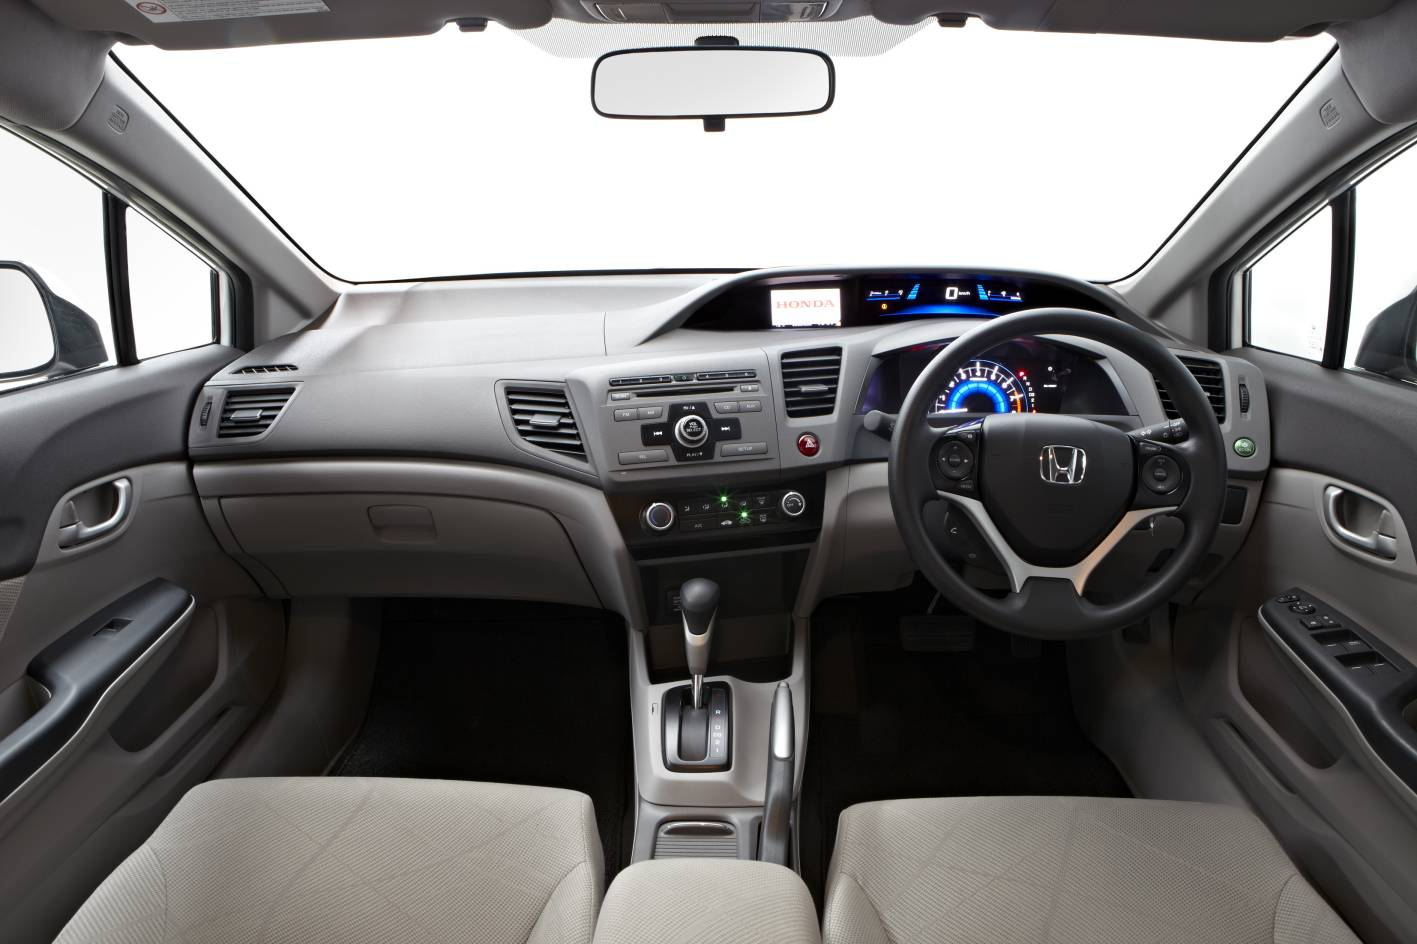 2012 Honda Civic VTi Series II interior |